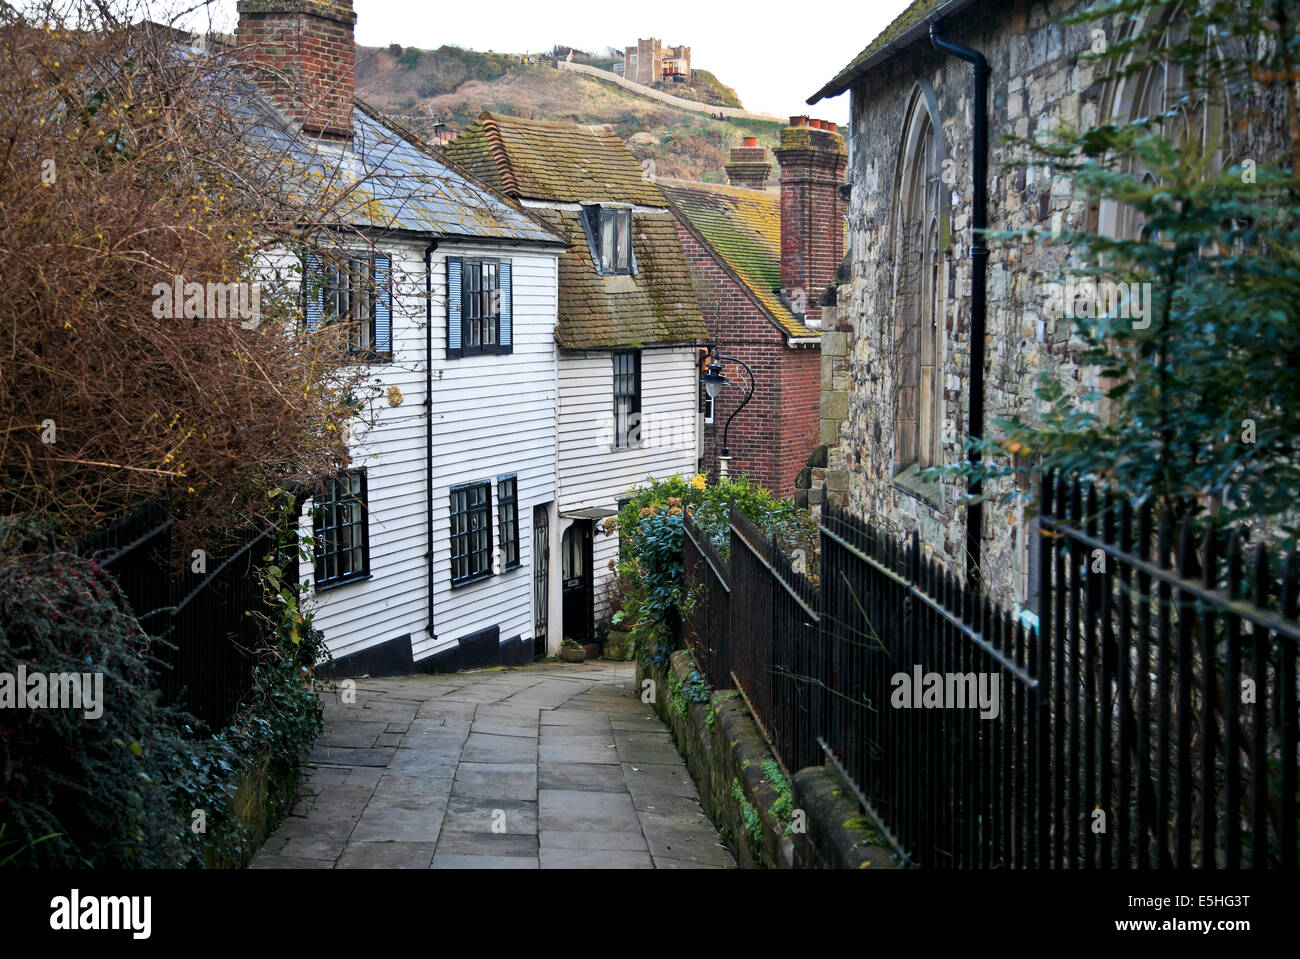 9517. Street view, Old Town, Hastings, East Sussex - Stock Image